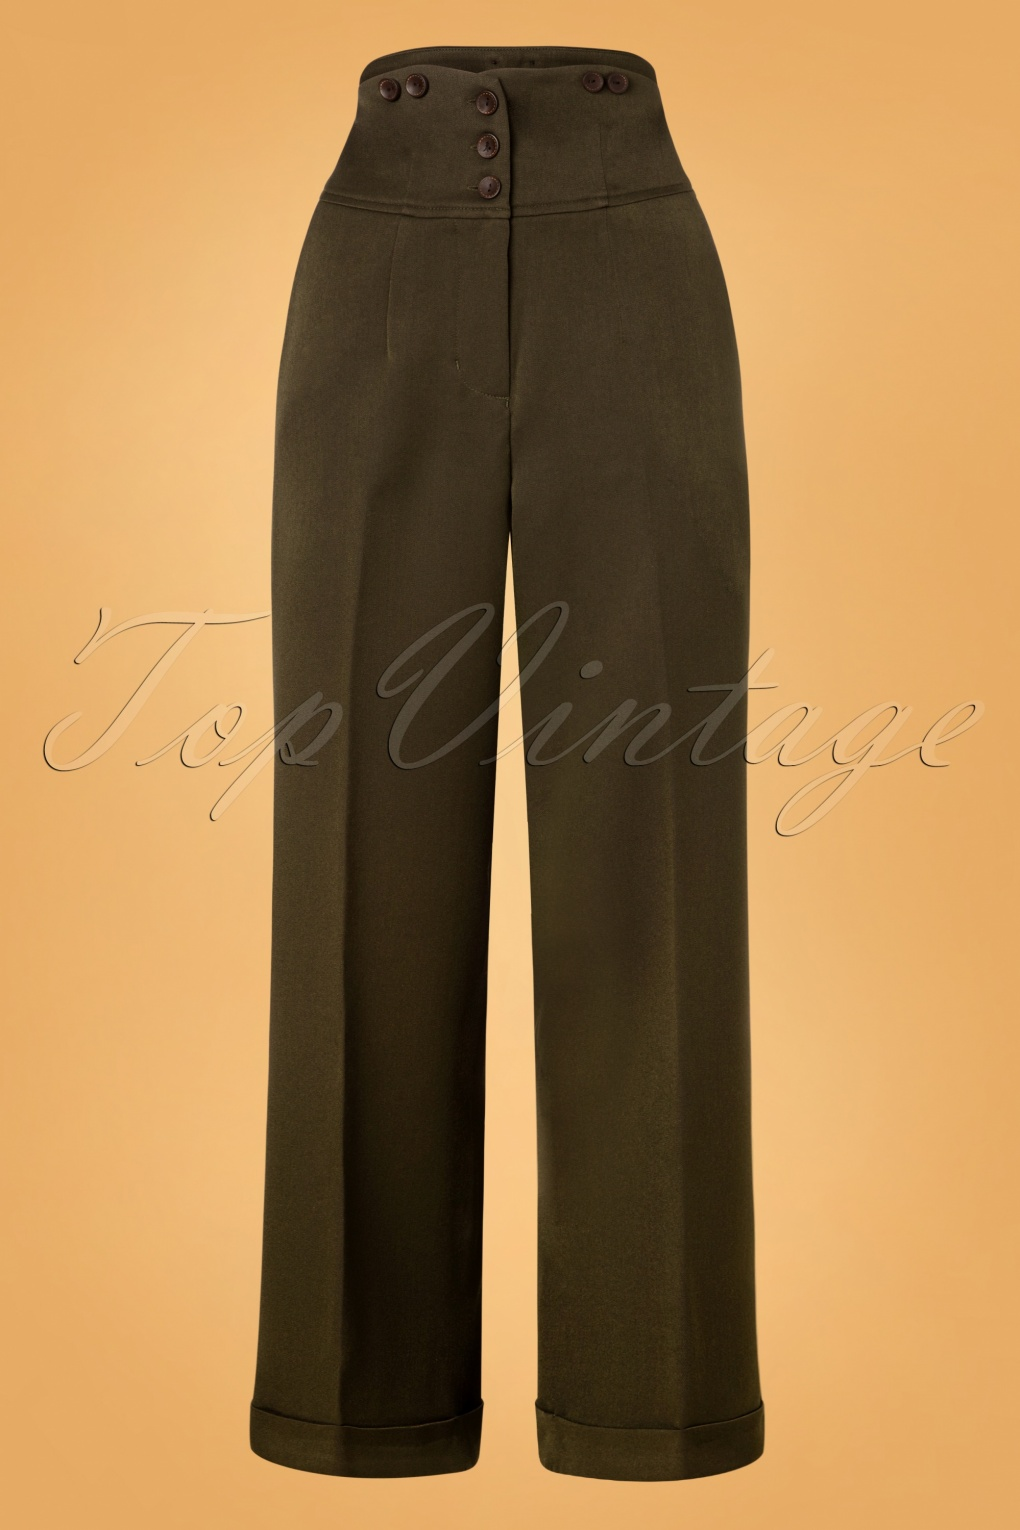 Vintage High Waisted Trousers, Sailor Pants, Jeans 50s Girl Boss Trousers in Dark Green £45.67 AT vintagedancer.com